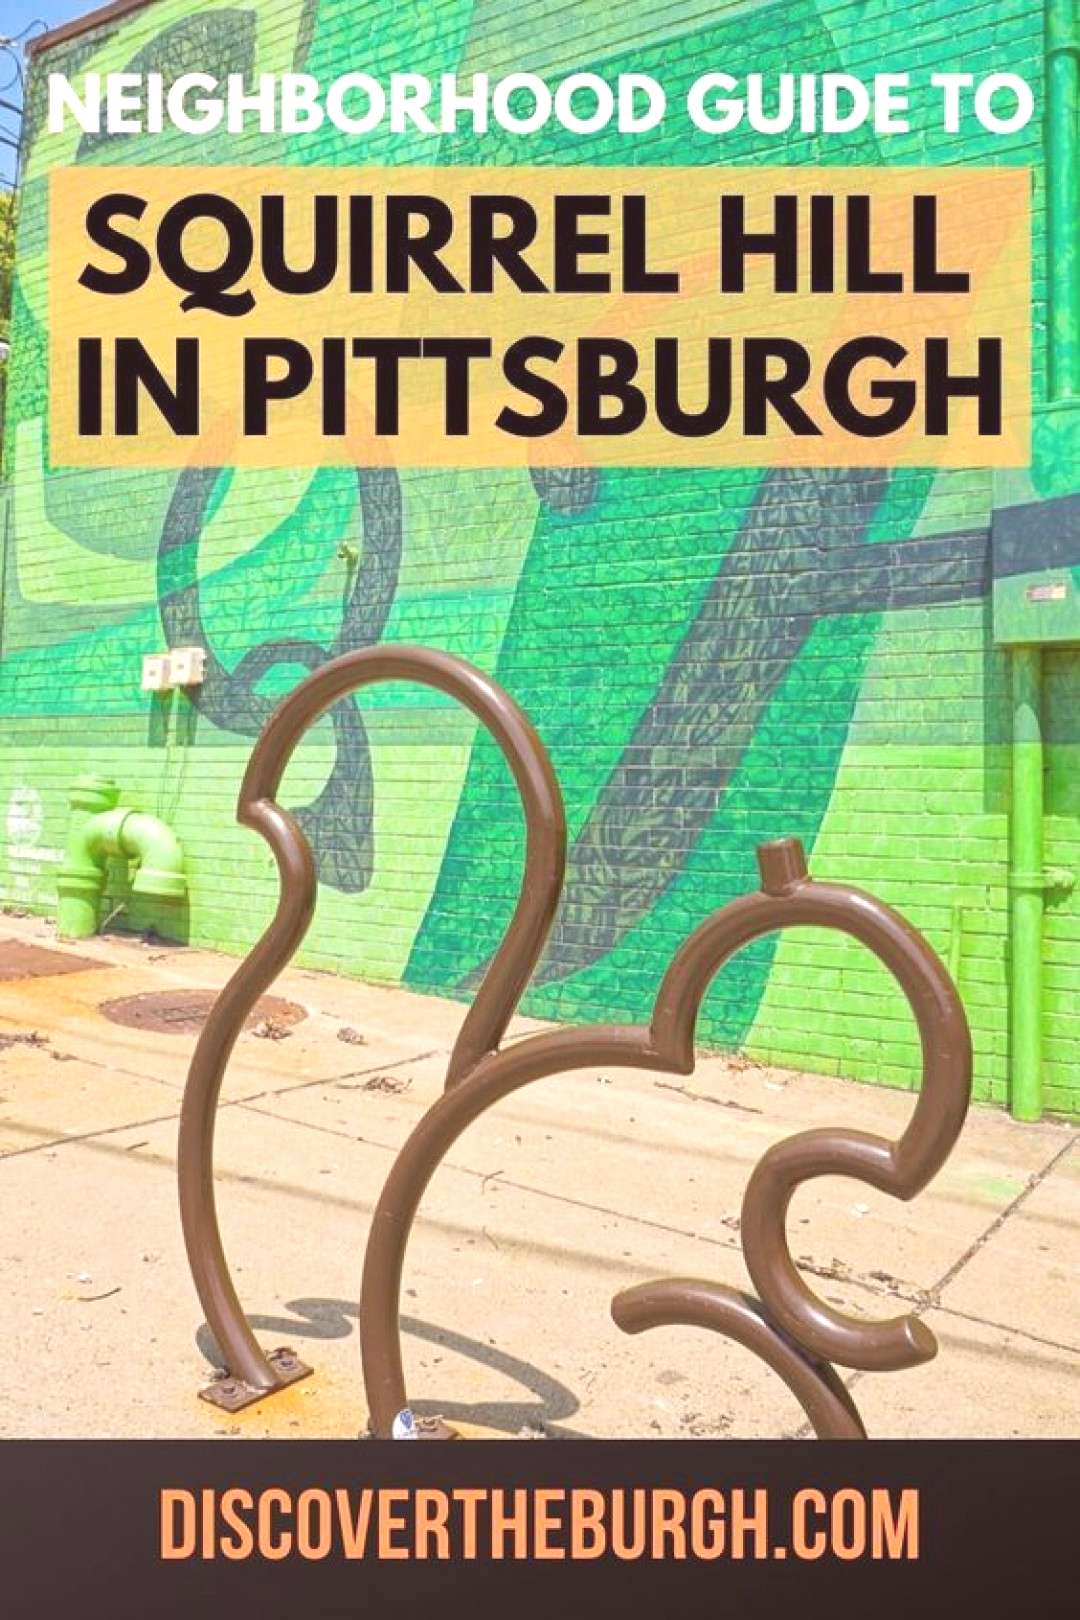 Squirrel Hill Neighborhood Guide Find a new favorite restaurant, bar, or attraction in Squirrel Hil